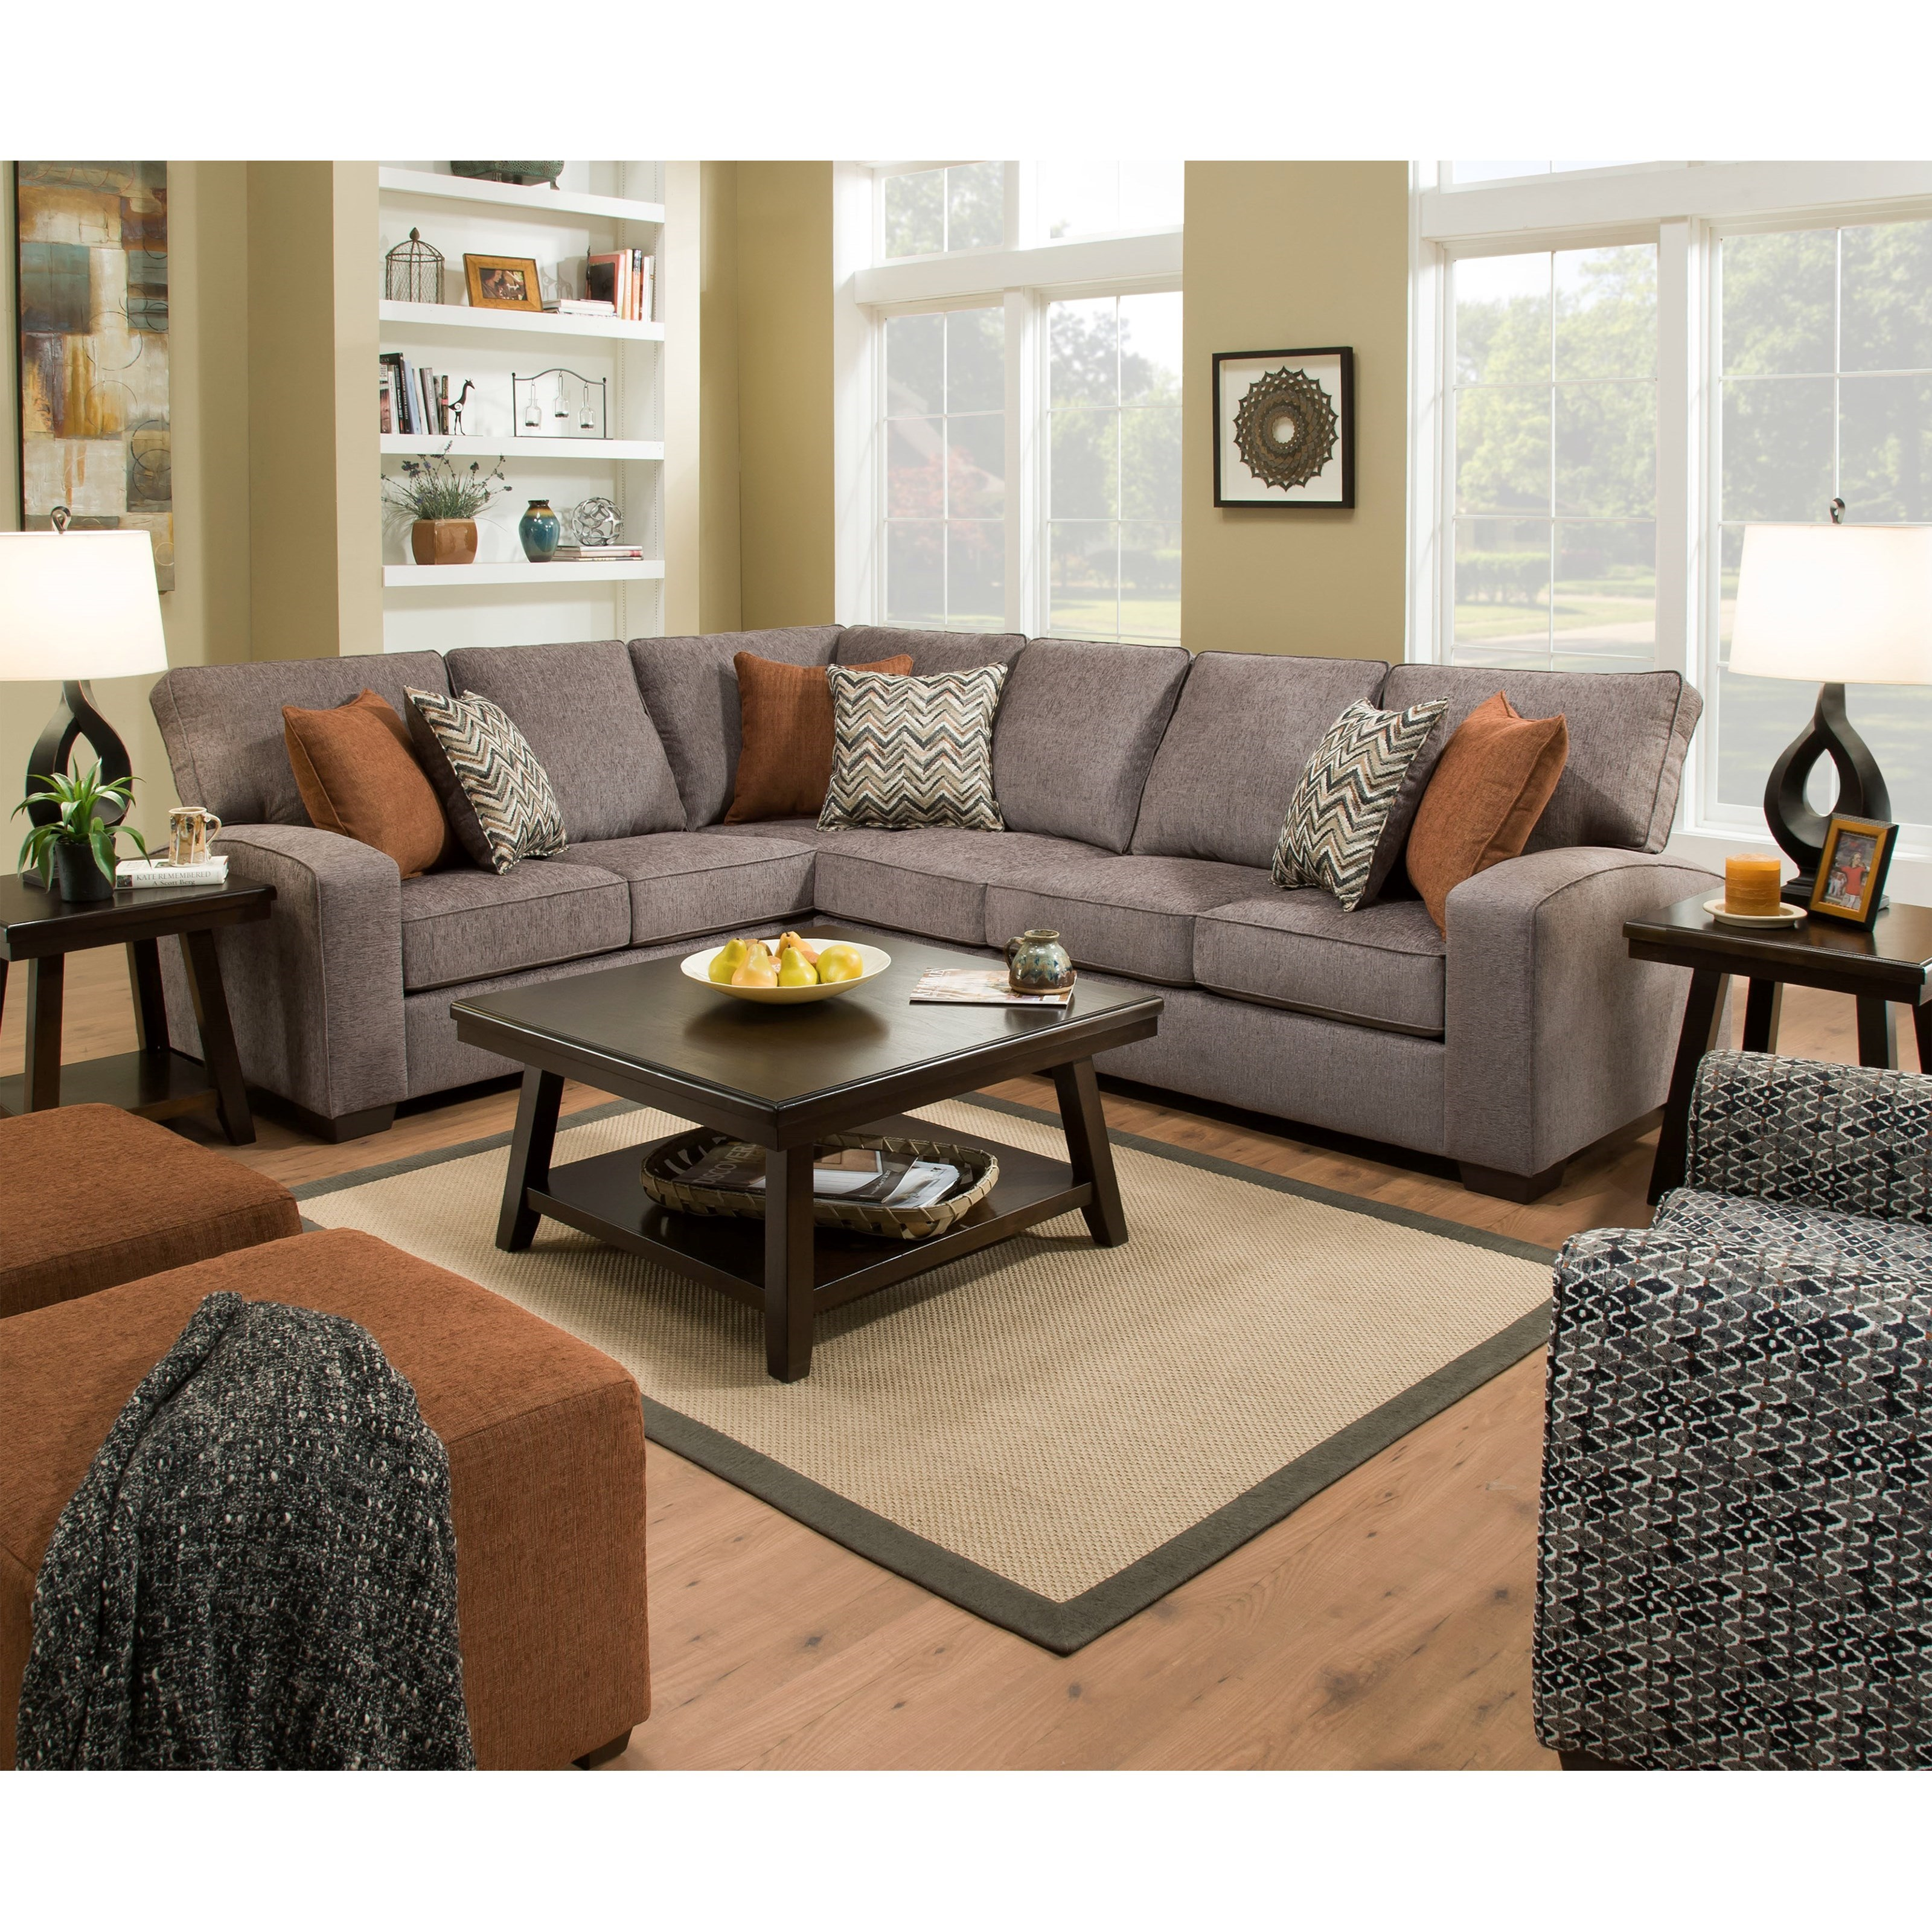 7077 Transitional L Shaped Sectional With Track Arms By United Furniture Industries At Household Furniture